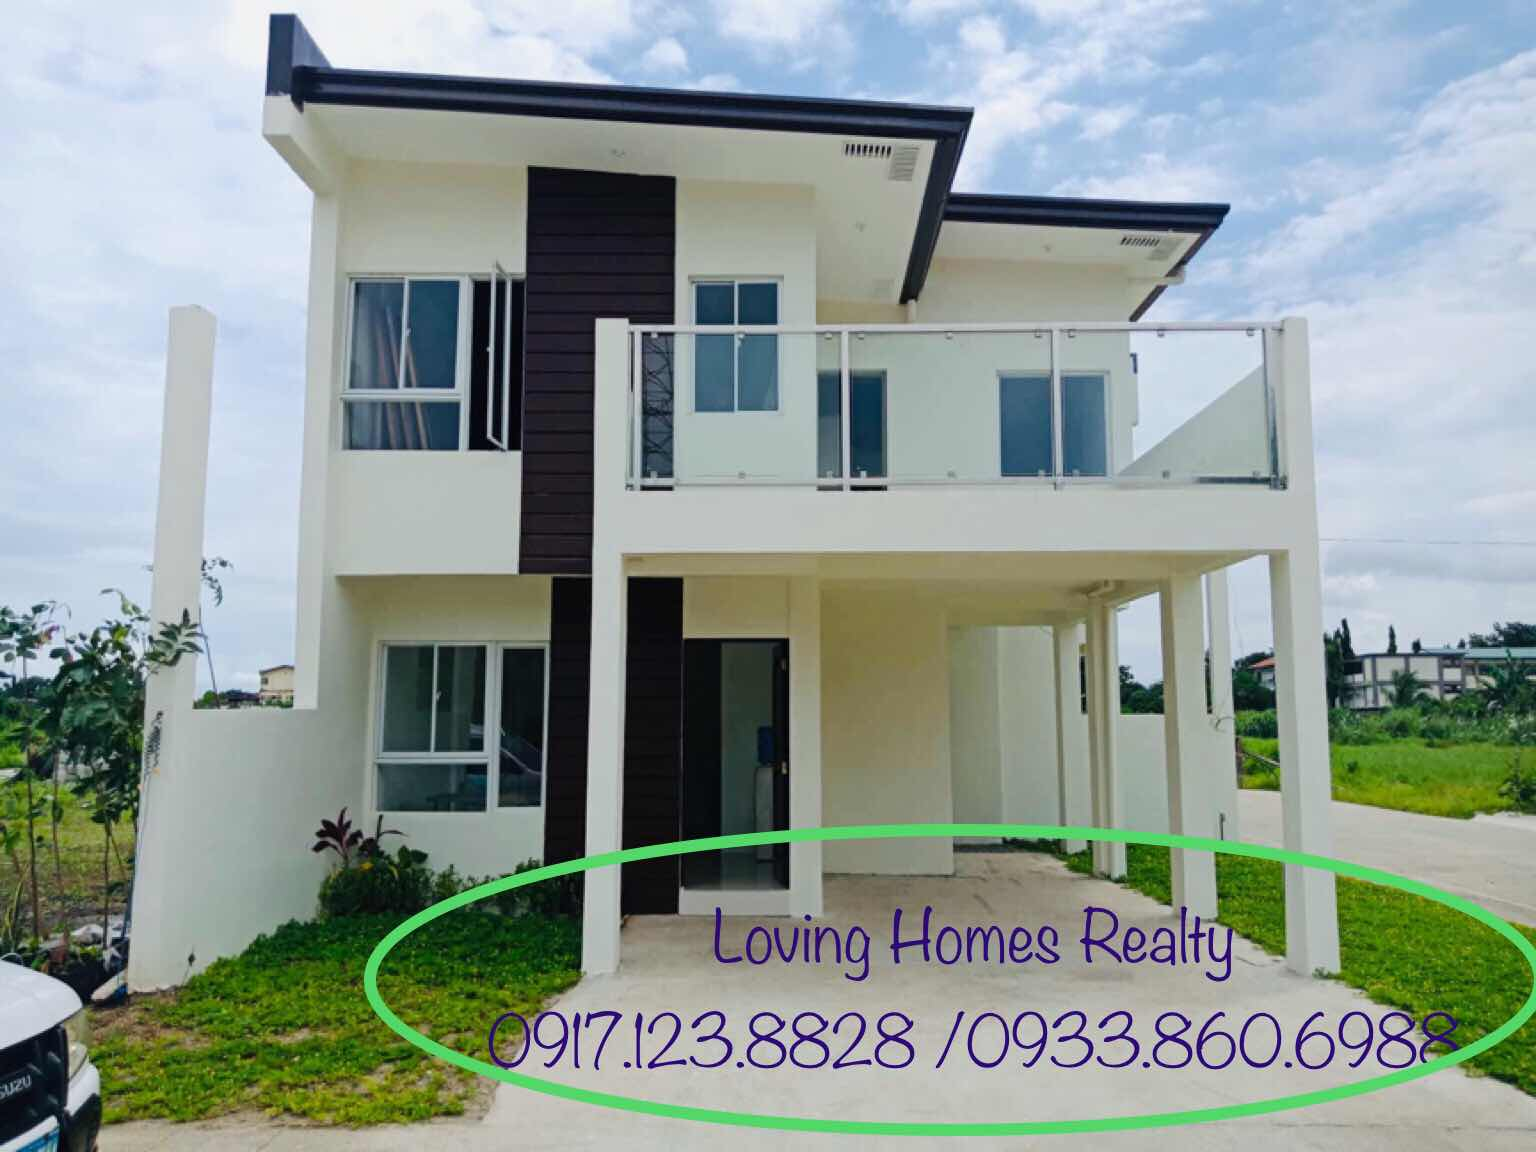 ROSE POINTE SUBDIVISION HOUSE AND LOT SALE IN STA ROSA LAGUNA RENT TO OWN HOUSE INSTALLMENT HOMES LAGUNA